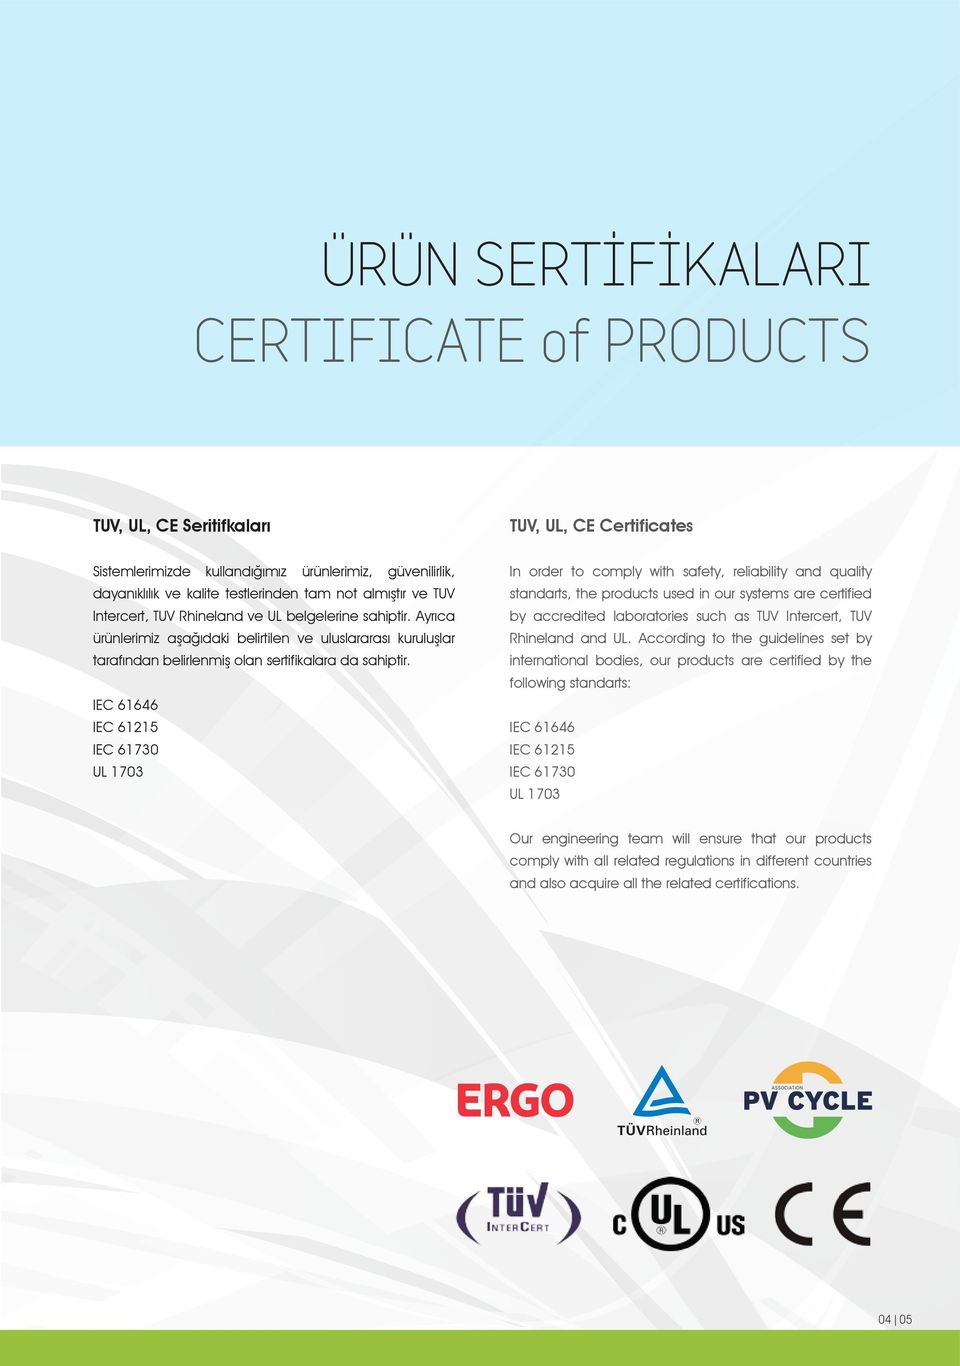 IEC 61646 IEC 61215 IEC 61730 UL 1703 In order to comply with safety, reliability and quality standarts, the products used in our systems are certified by accredited laboratories such as TUV